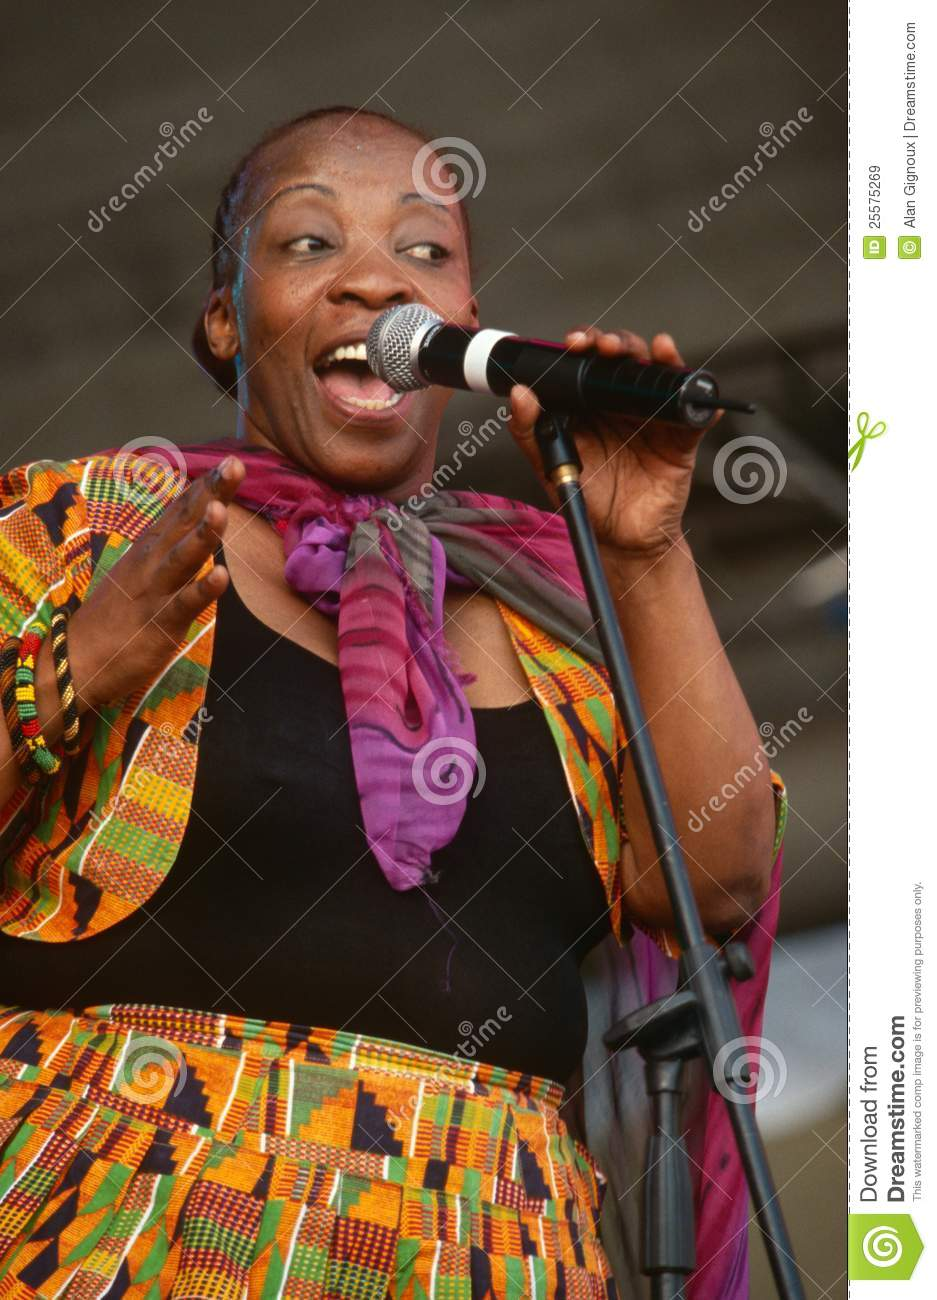 how to become a singer in south africa